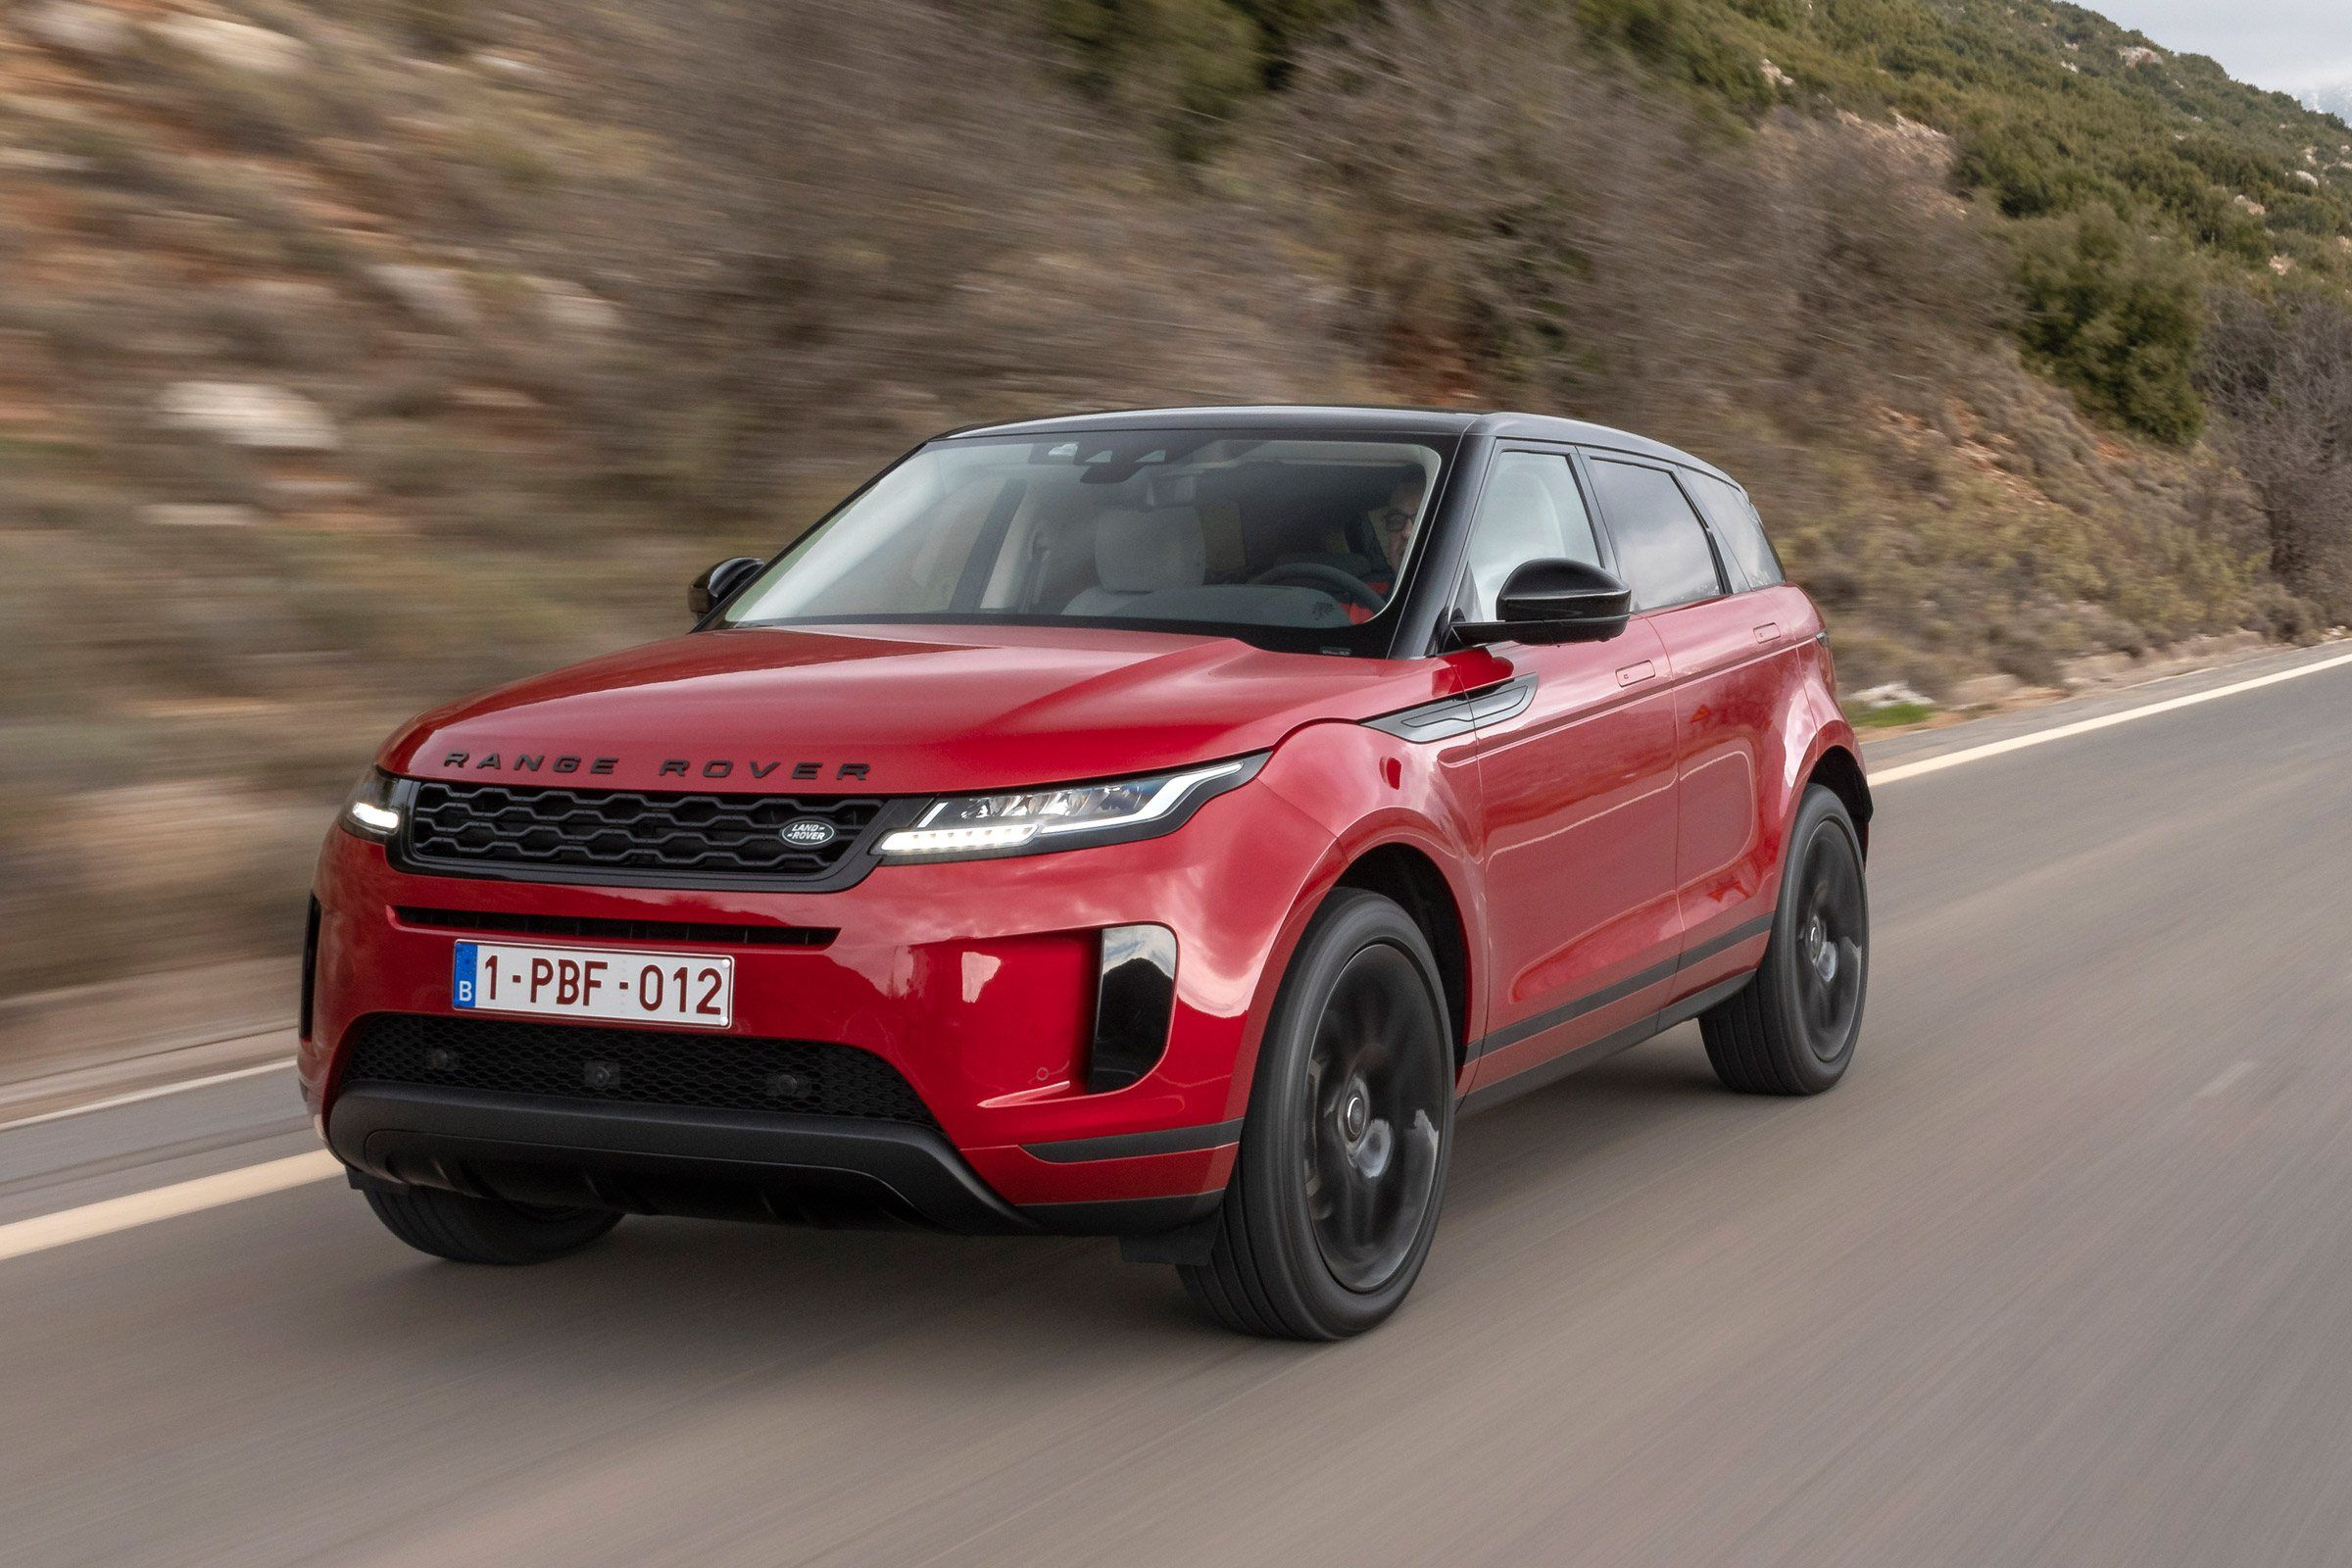 2020 Land Rover Discovery Performance and New Engine in